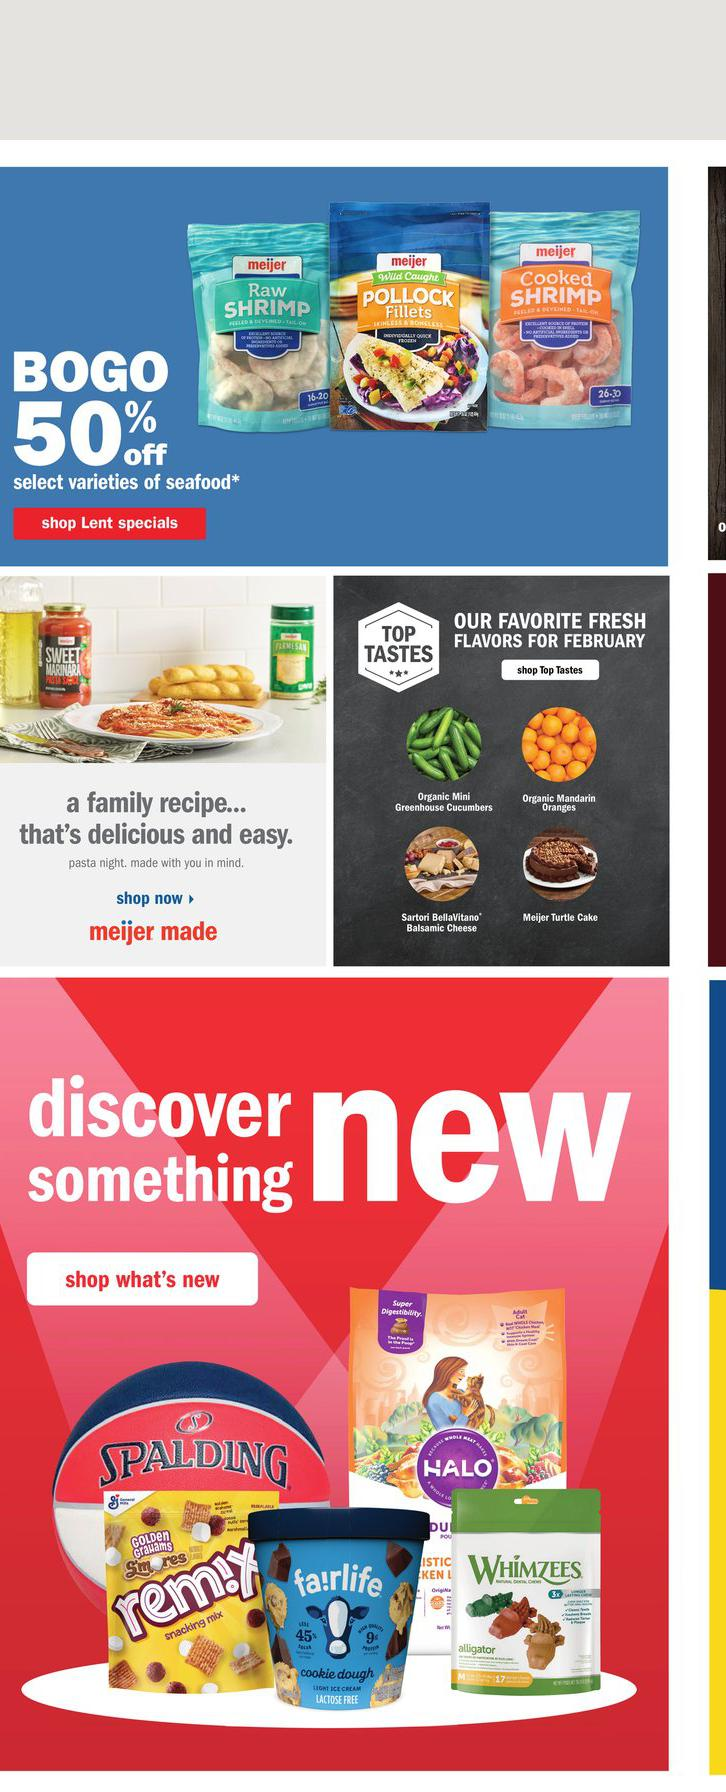 21.02.2021 Meijer ad 11. page